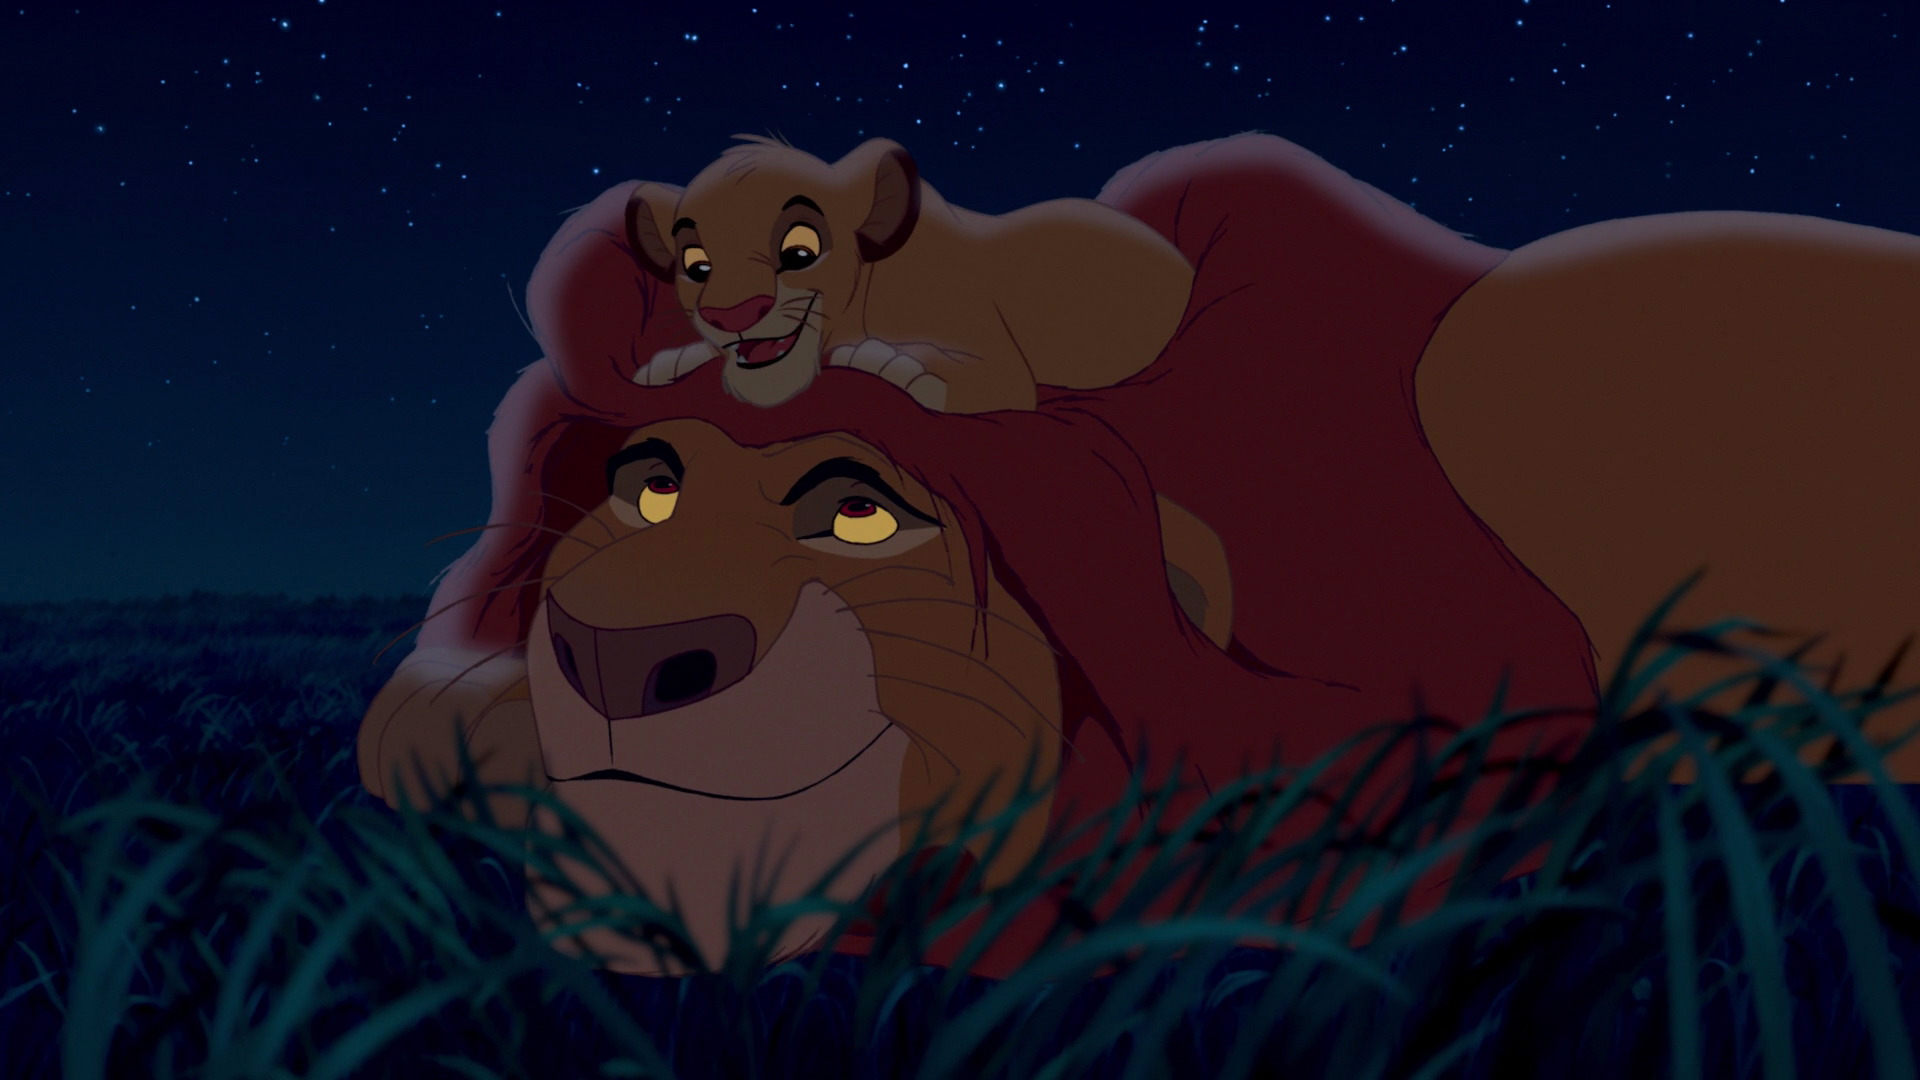 Uncategorized Lion King Mufasa simbarelationships disney wiki fandom powered by wikia lion king disneyscreencaps com 2890